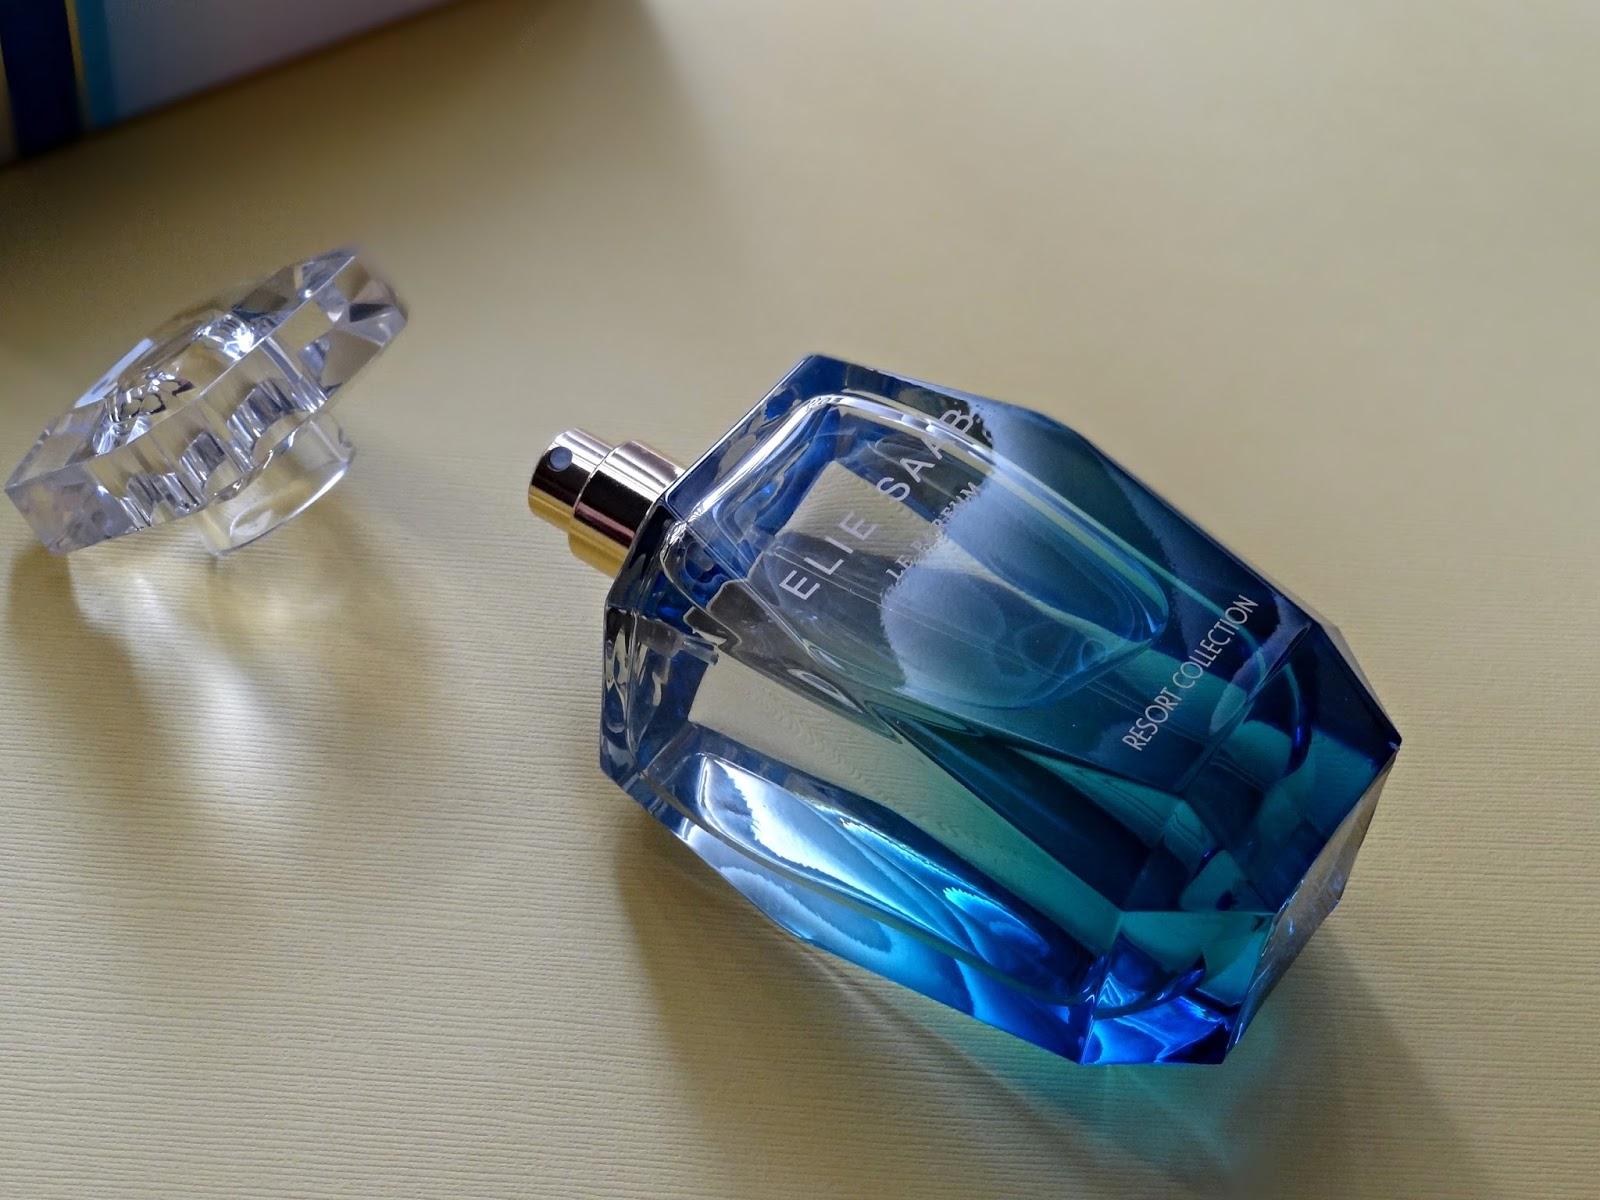 Elie Saab Le Parfum Resort Collection Eau de Toilette Review, Photos